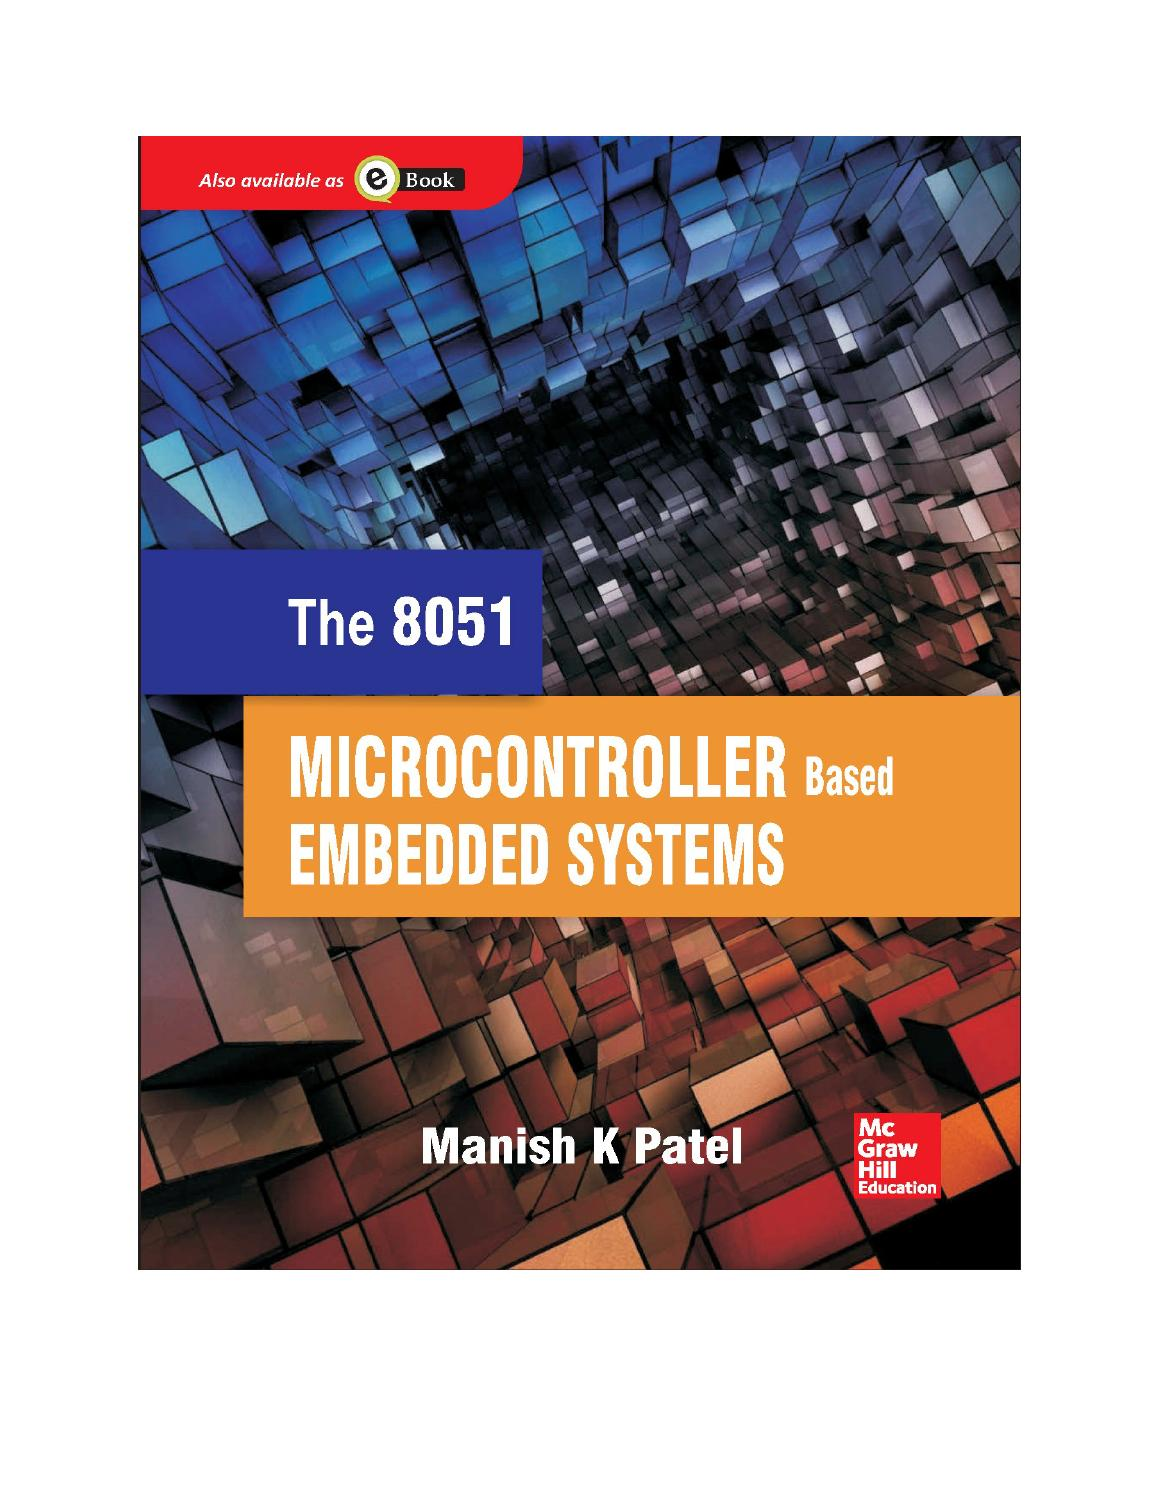 The 8051 Microcontroller Based Embedded Systems By Manish K Patel Projects For Engineering Students Issuu